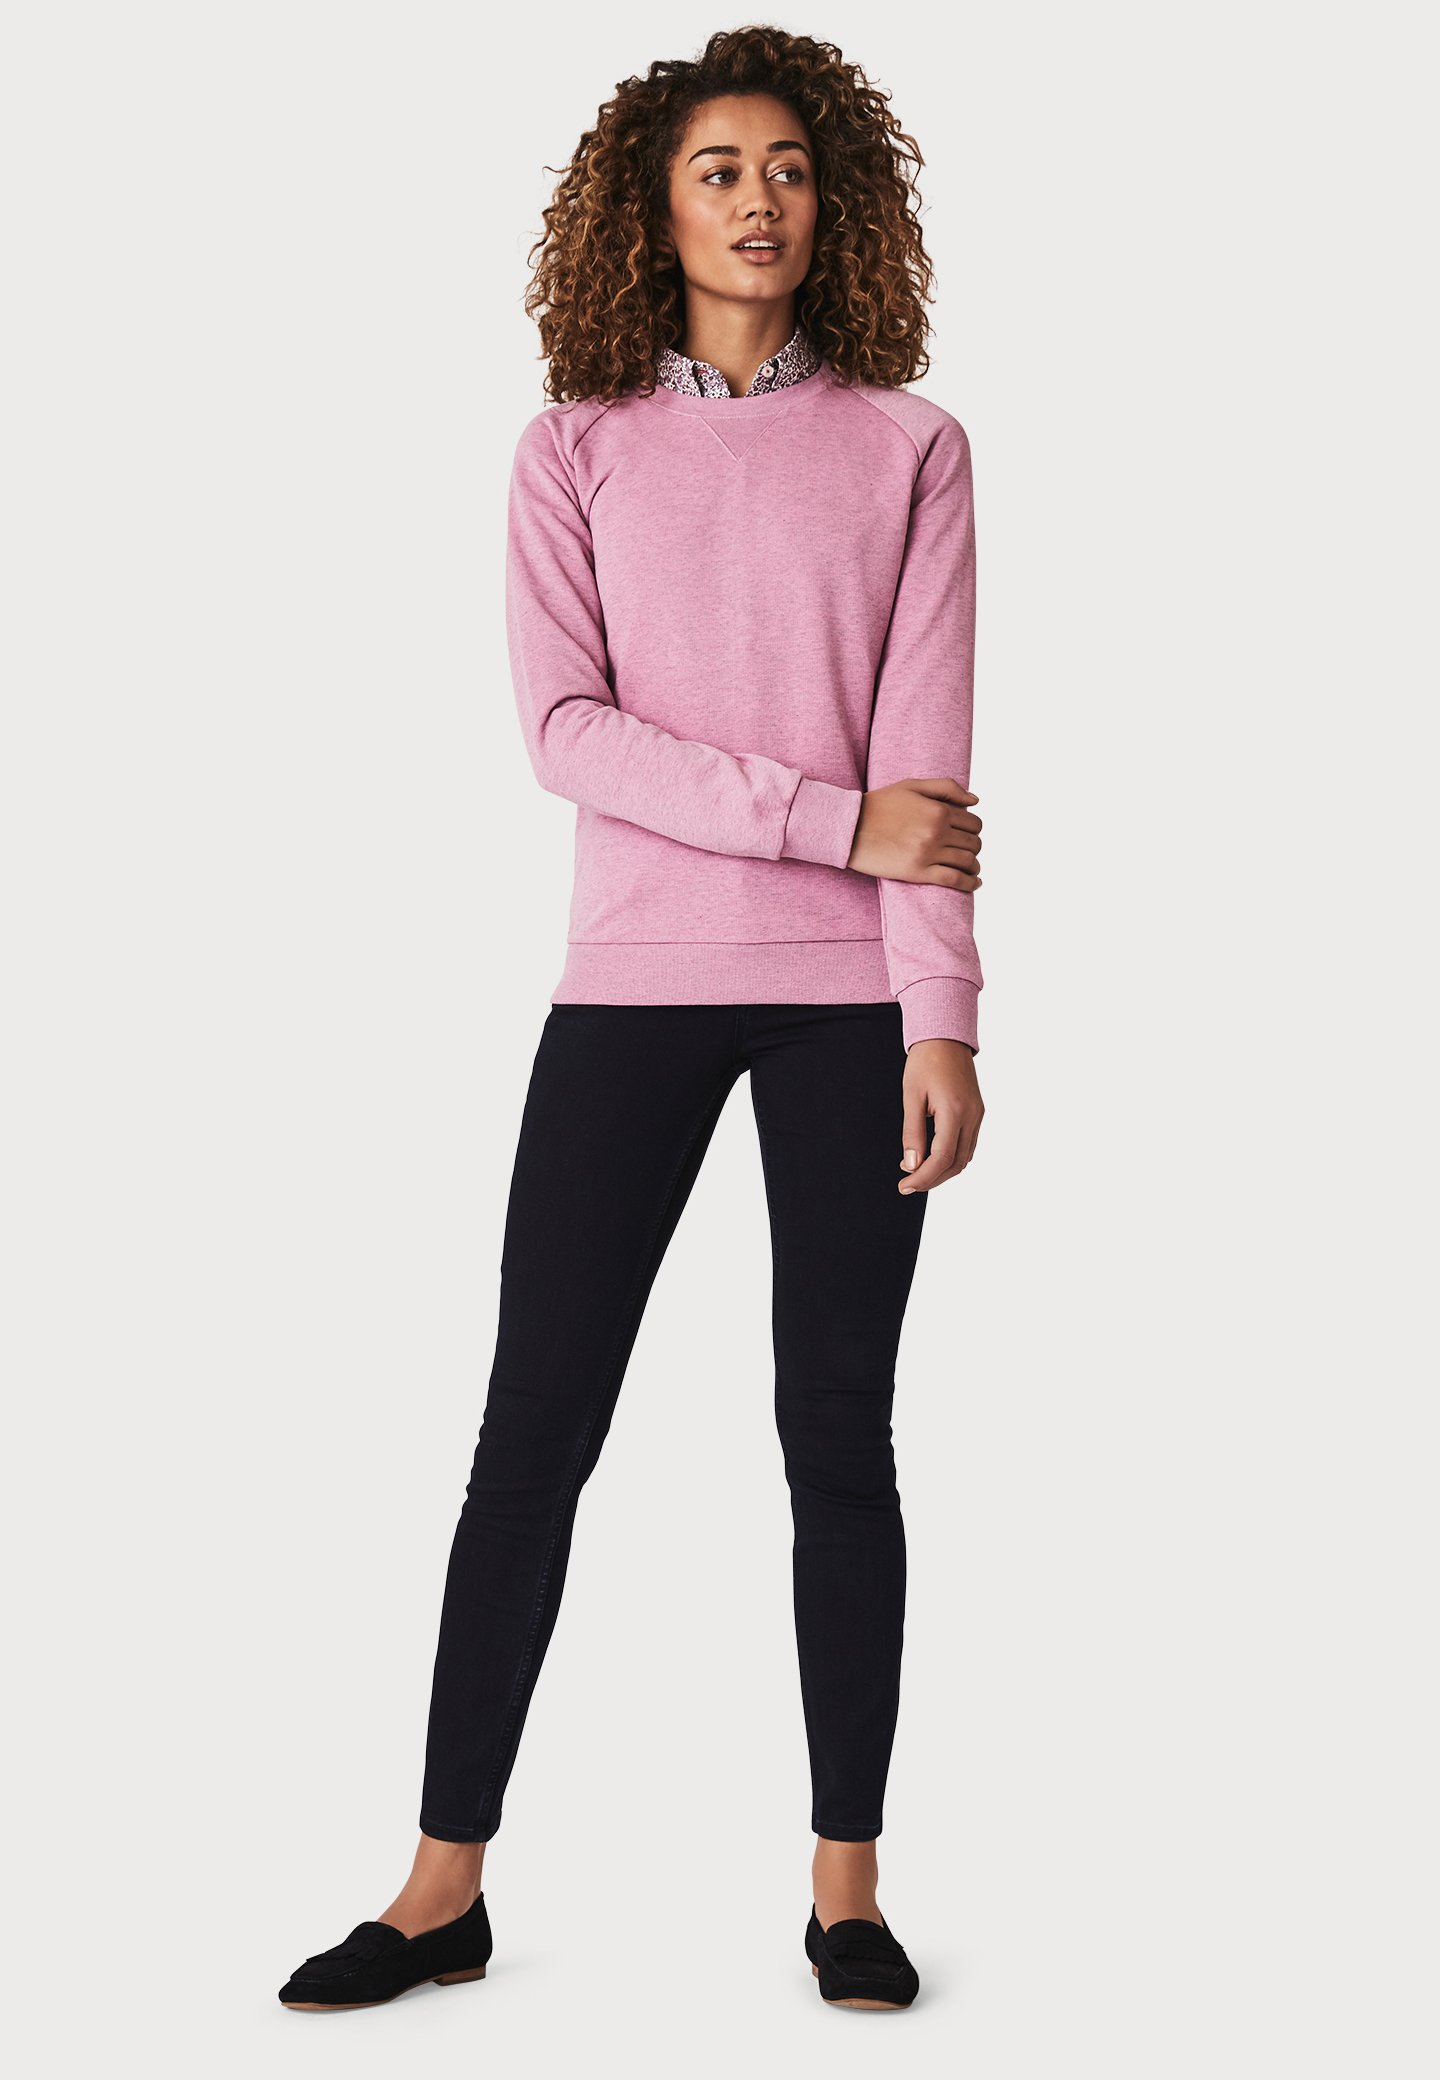 Crew Clothing Company Overdyed - Sweater Pink IrutD6s